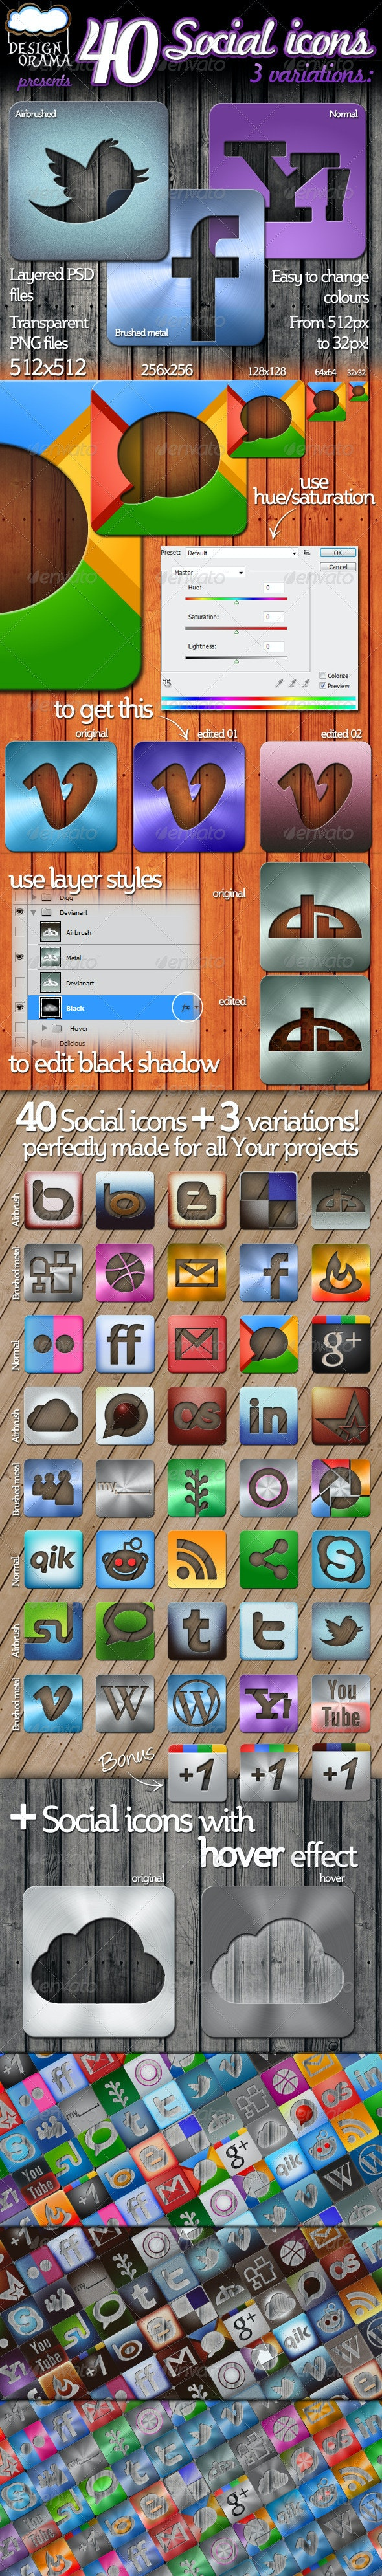 40 Social Icons - Airbrush, Brushed Metal & Normal - Web Icons